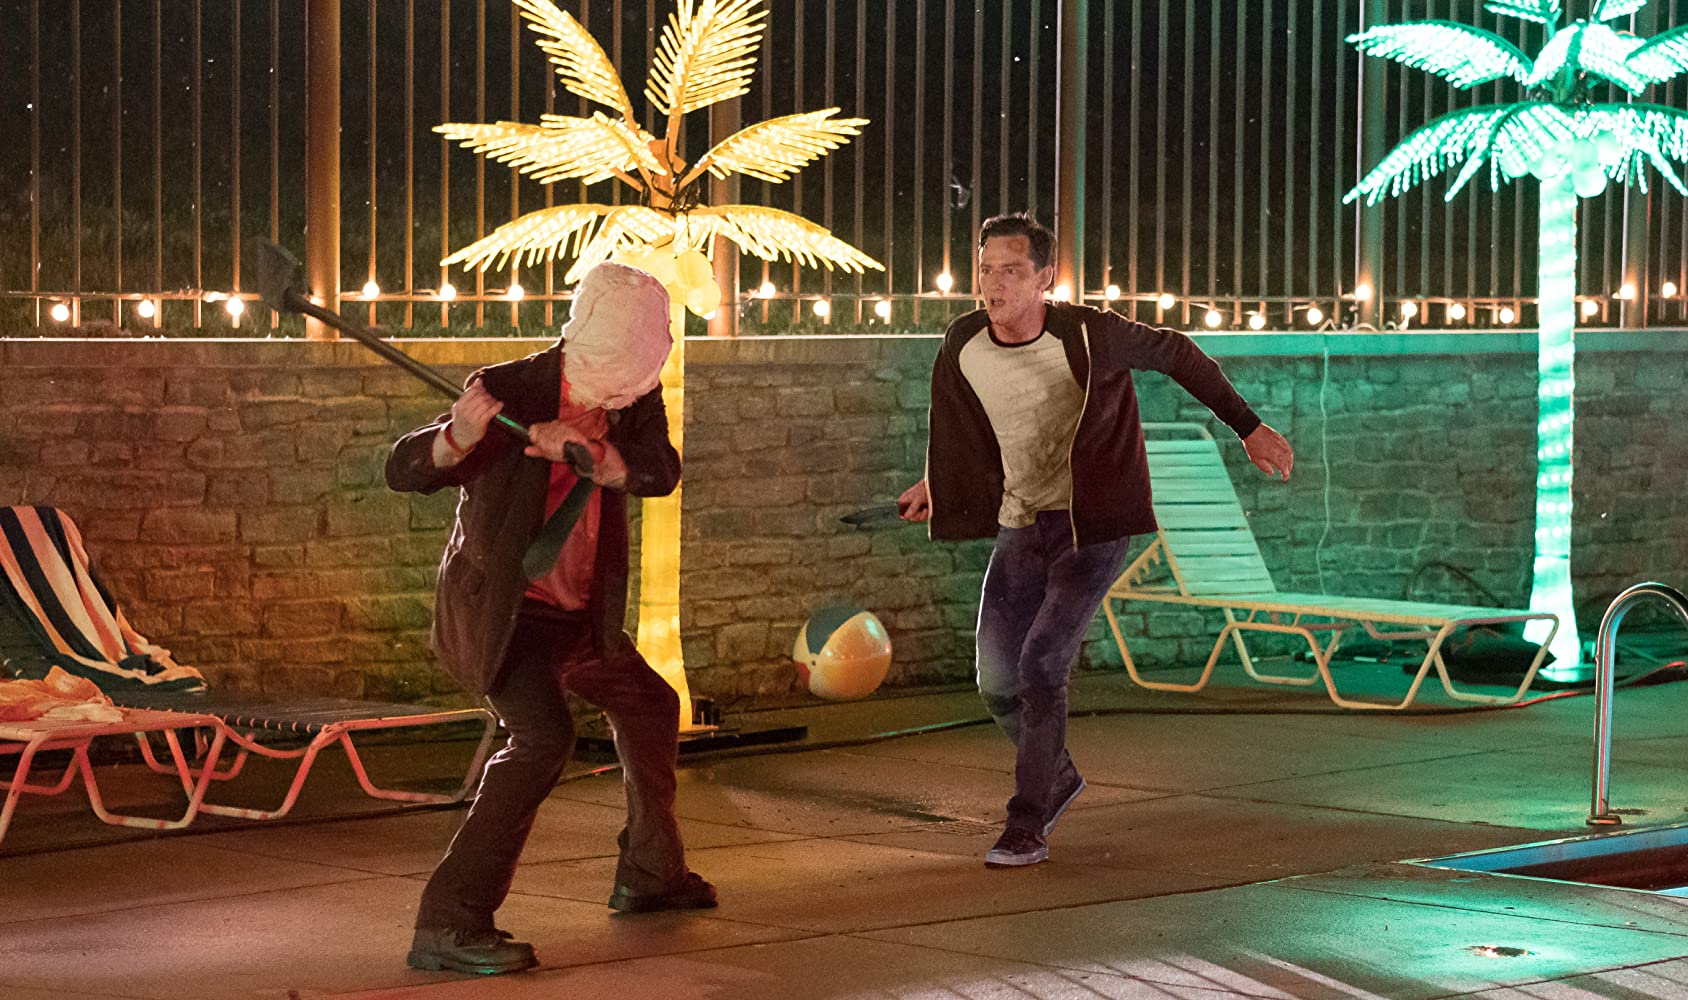 Damian Maffei and Lewis Pullman in The Strangers: Prey at Night (2018)